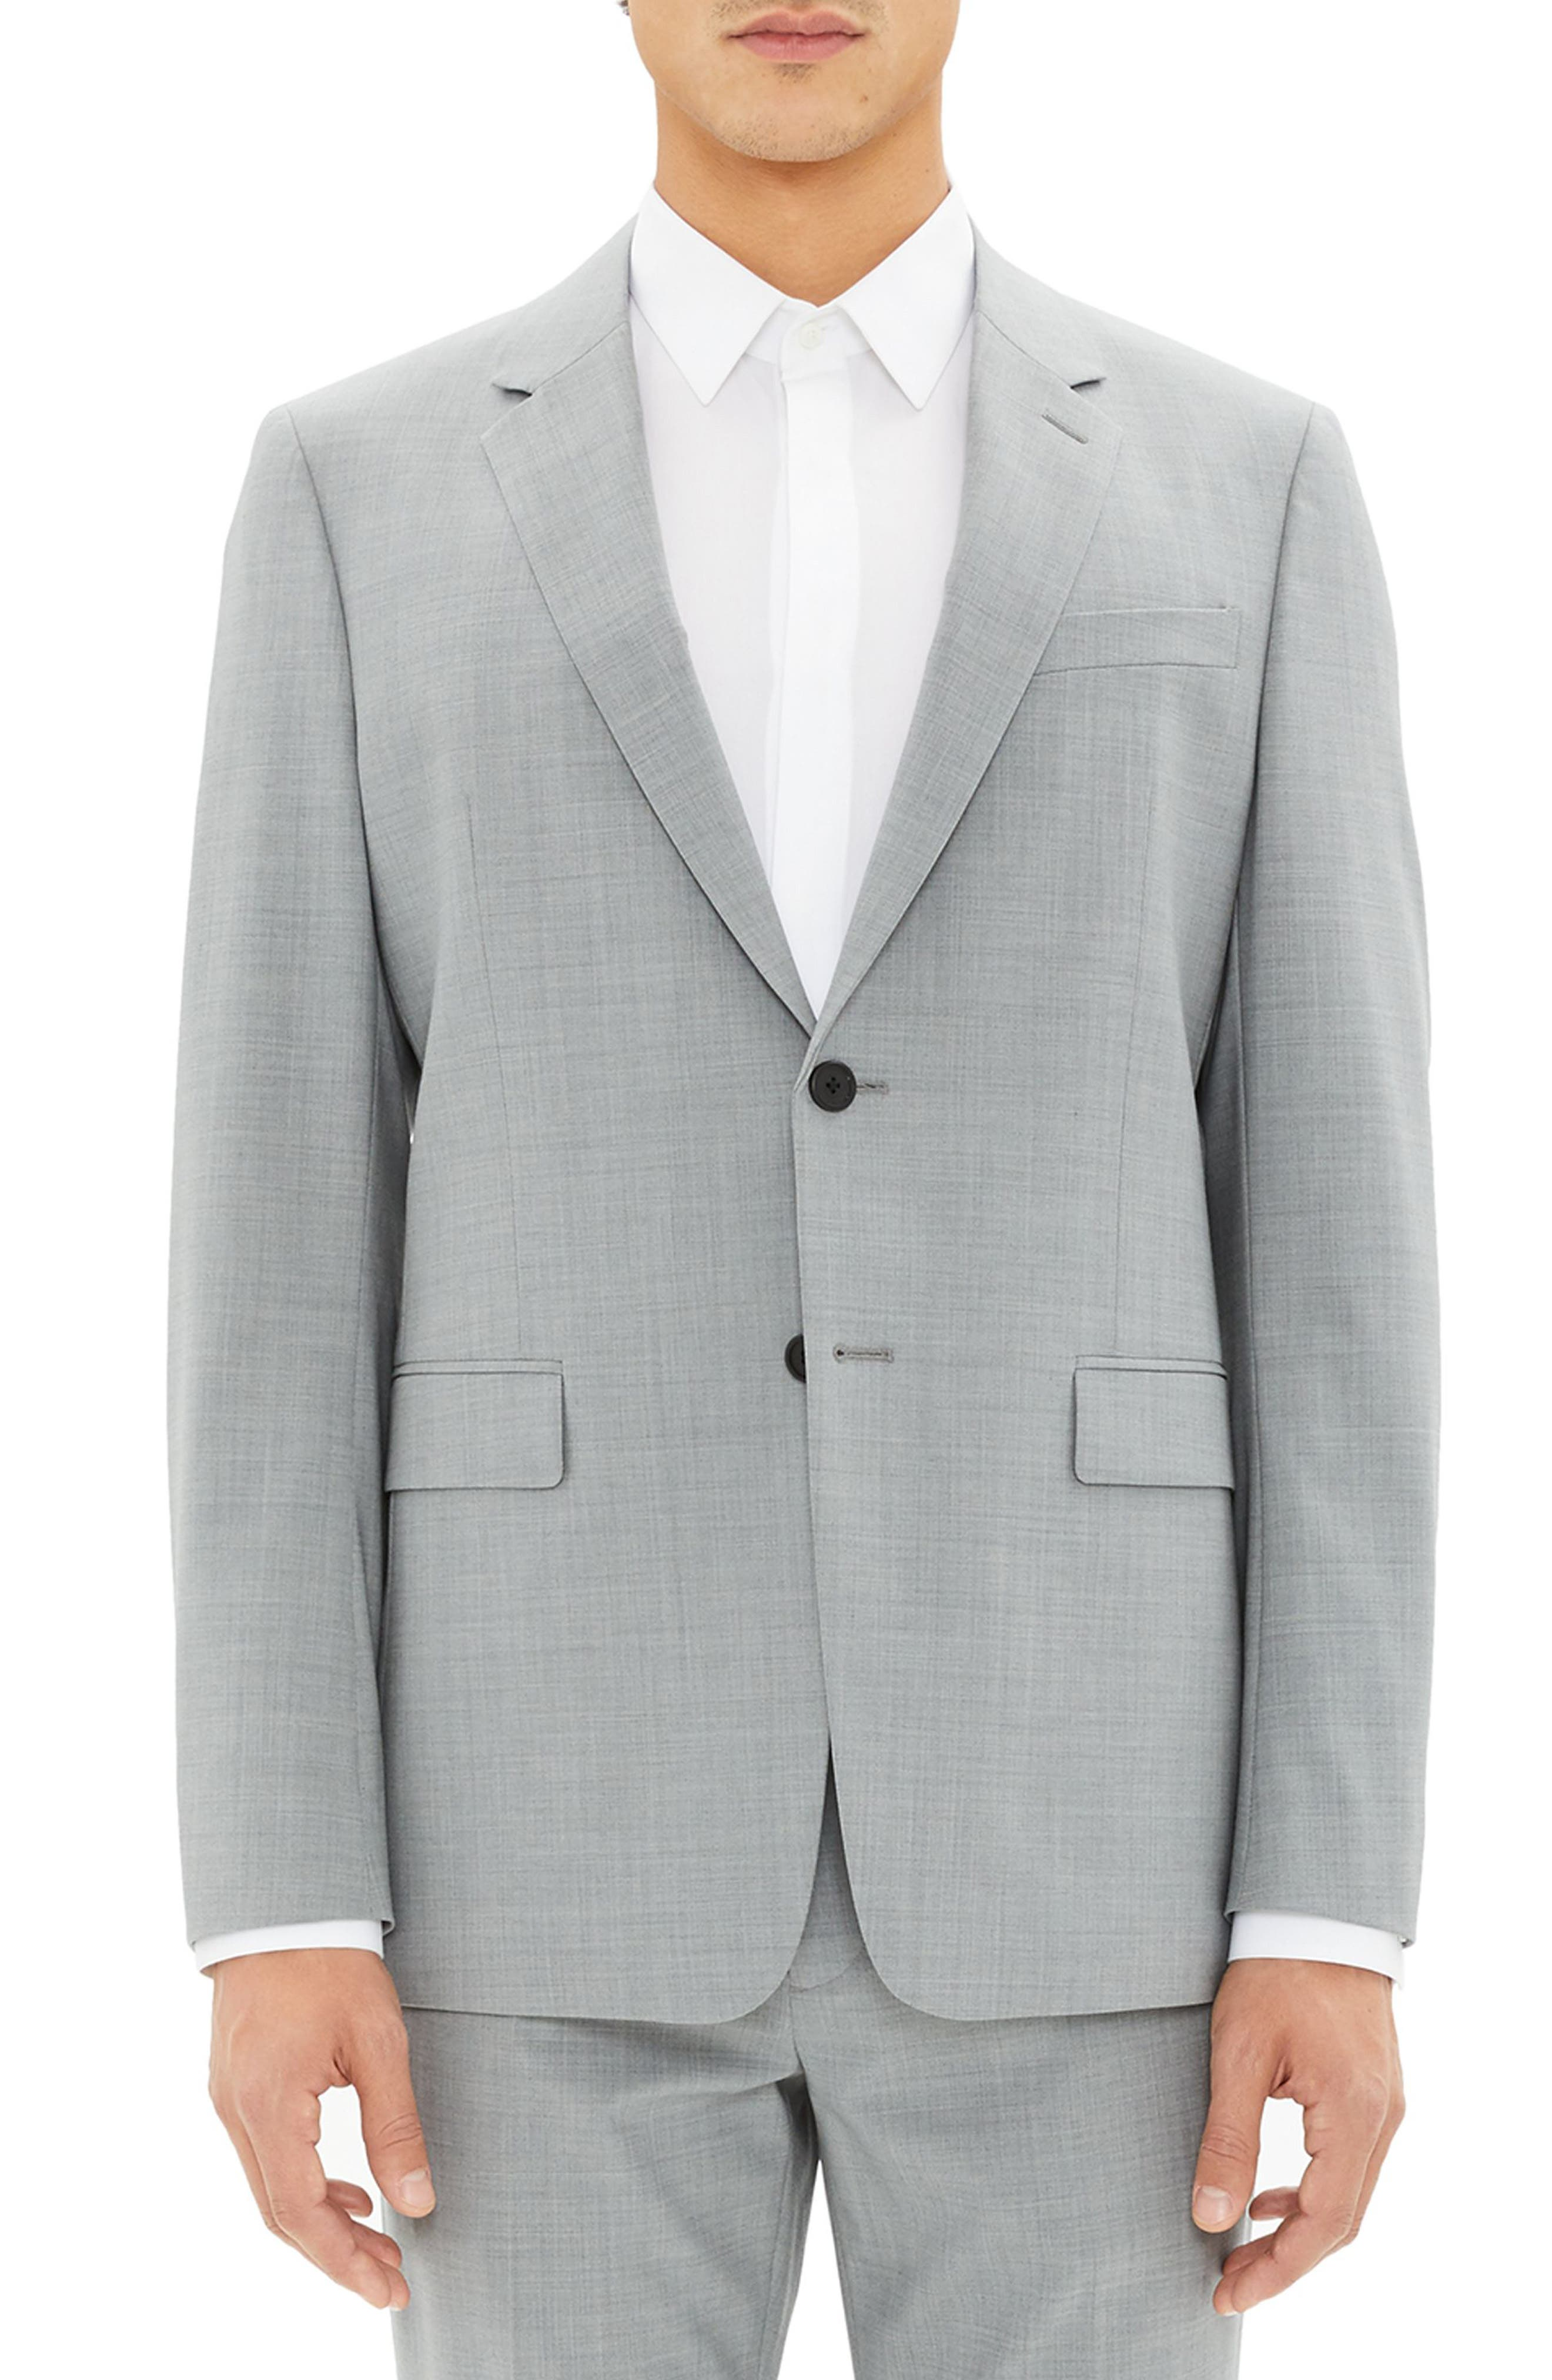 New Tailor Chambers Blazer,                         Main,                         color, CHROME MELANGE